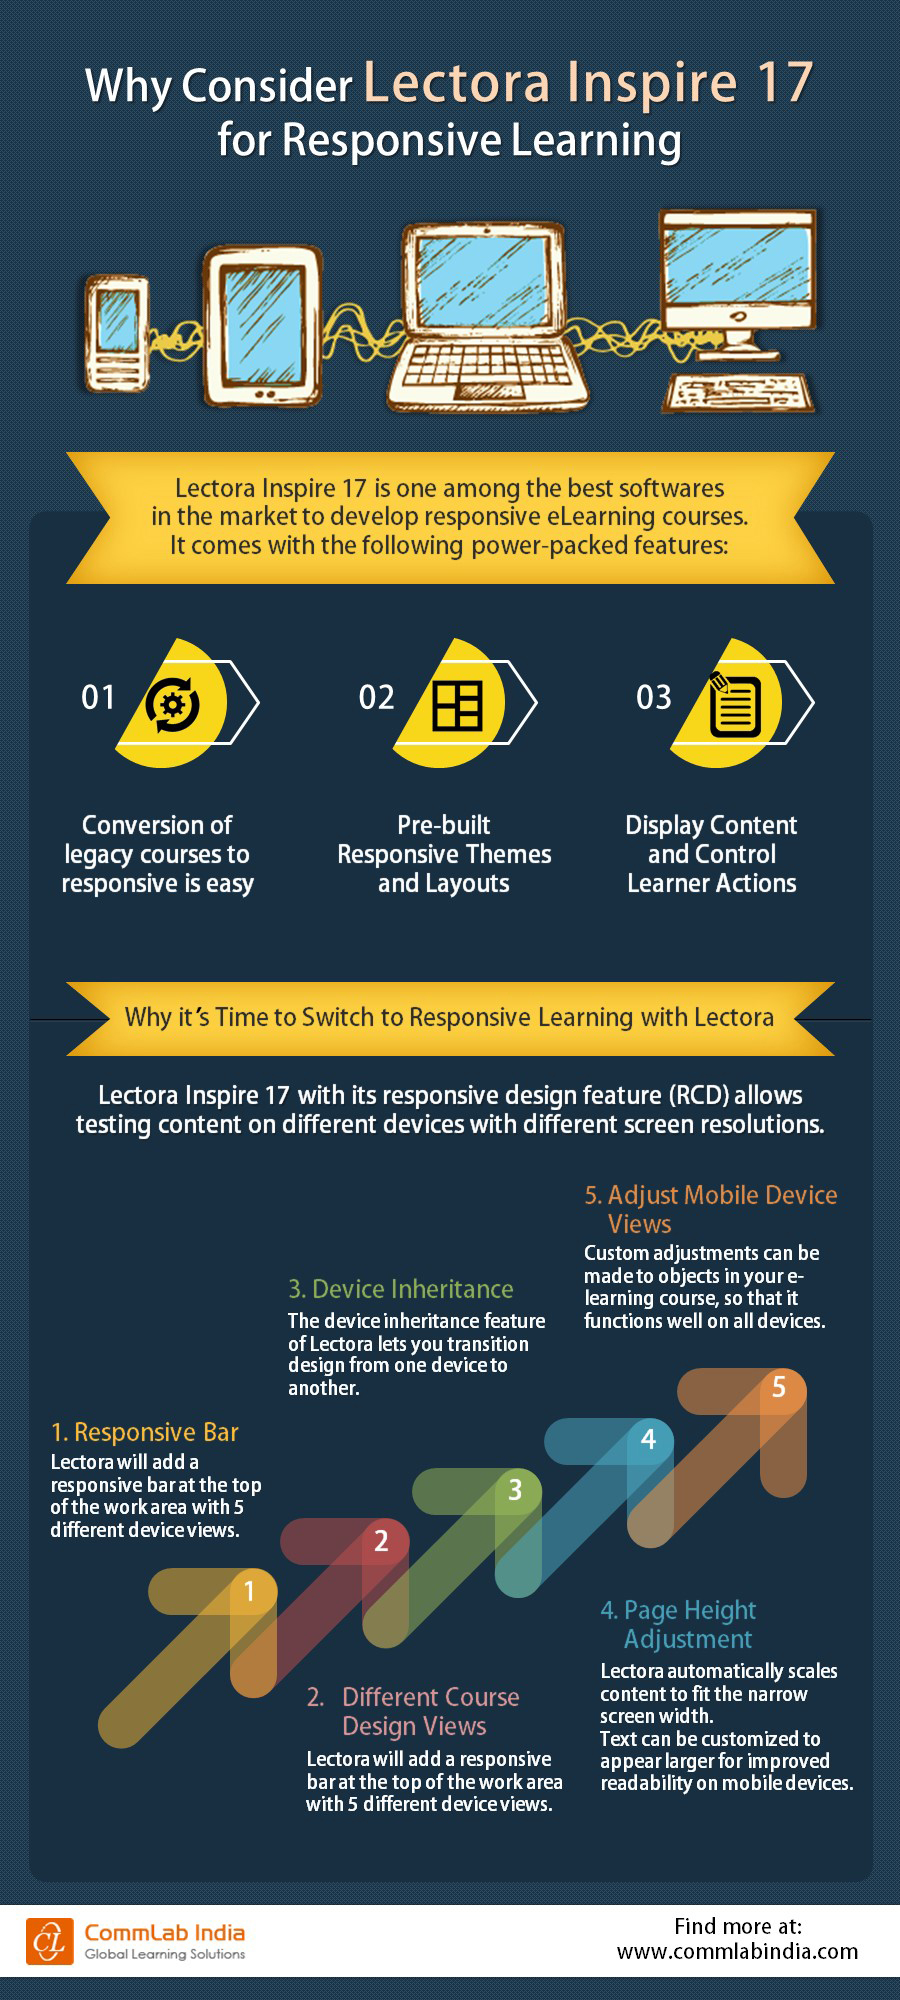 Why Consider Lectora Inspire 17 for Responsive Learning [Infographic]